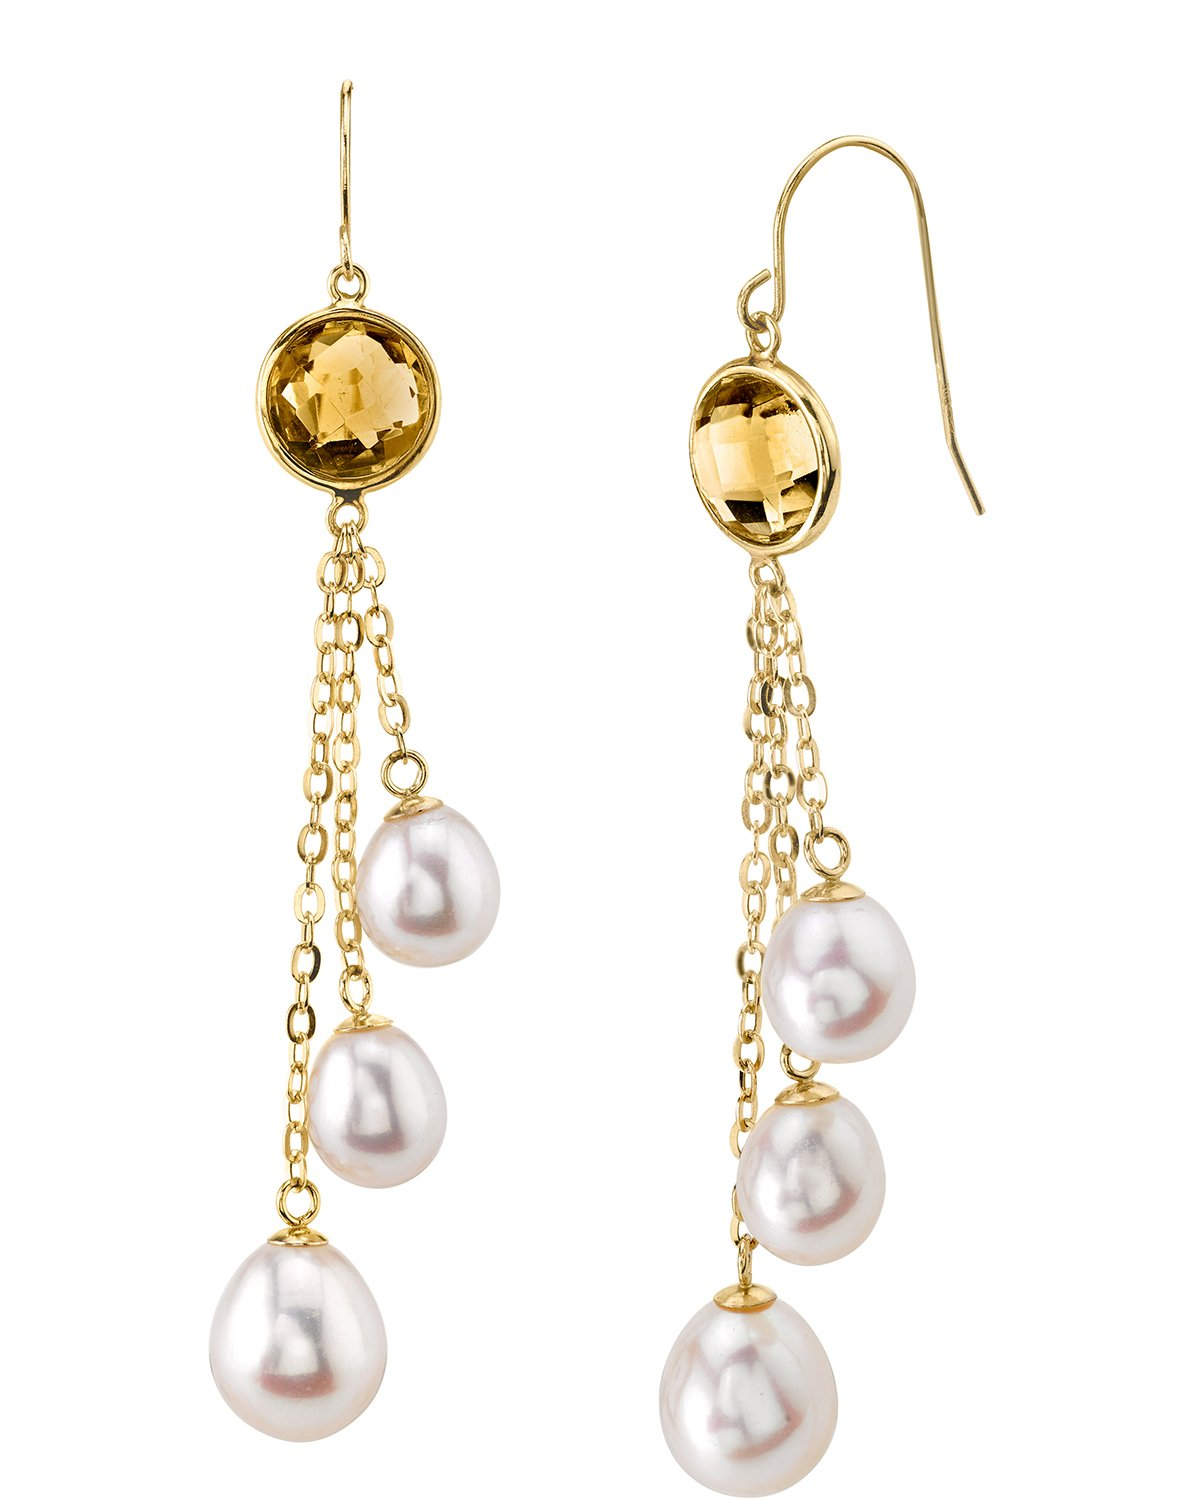 14K Gold Triple Freshwater Pearl & Citrine Aliyah Earrings